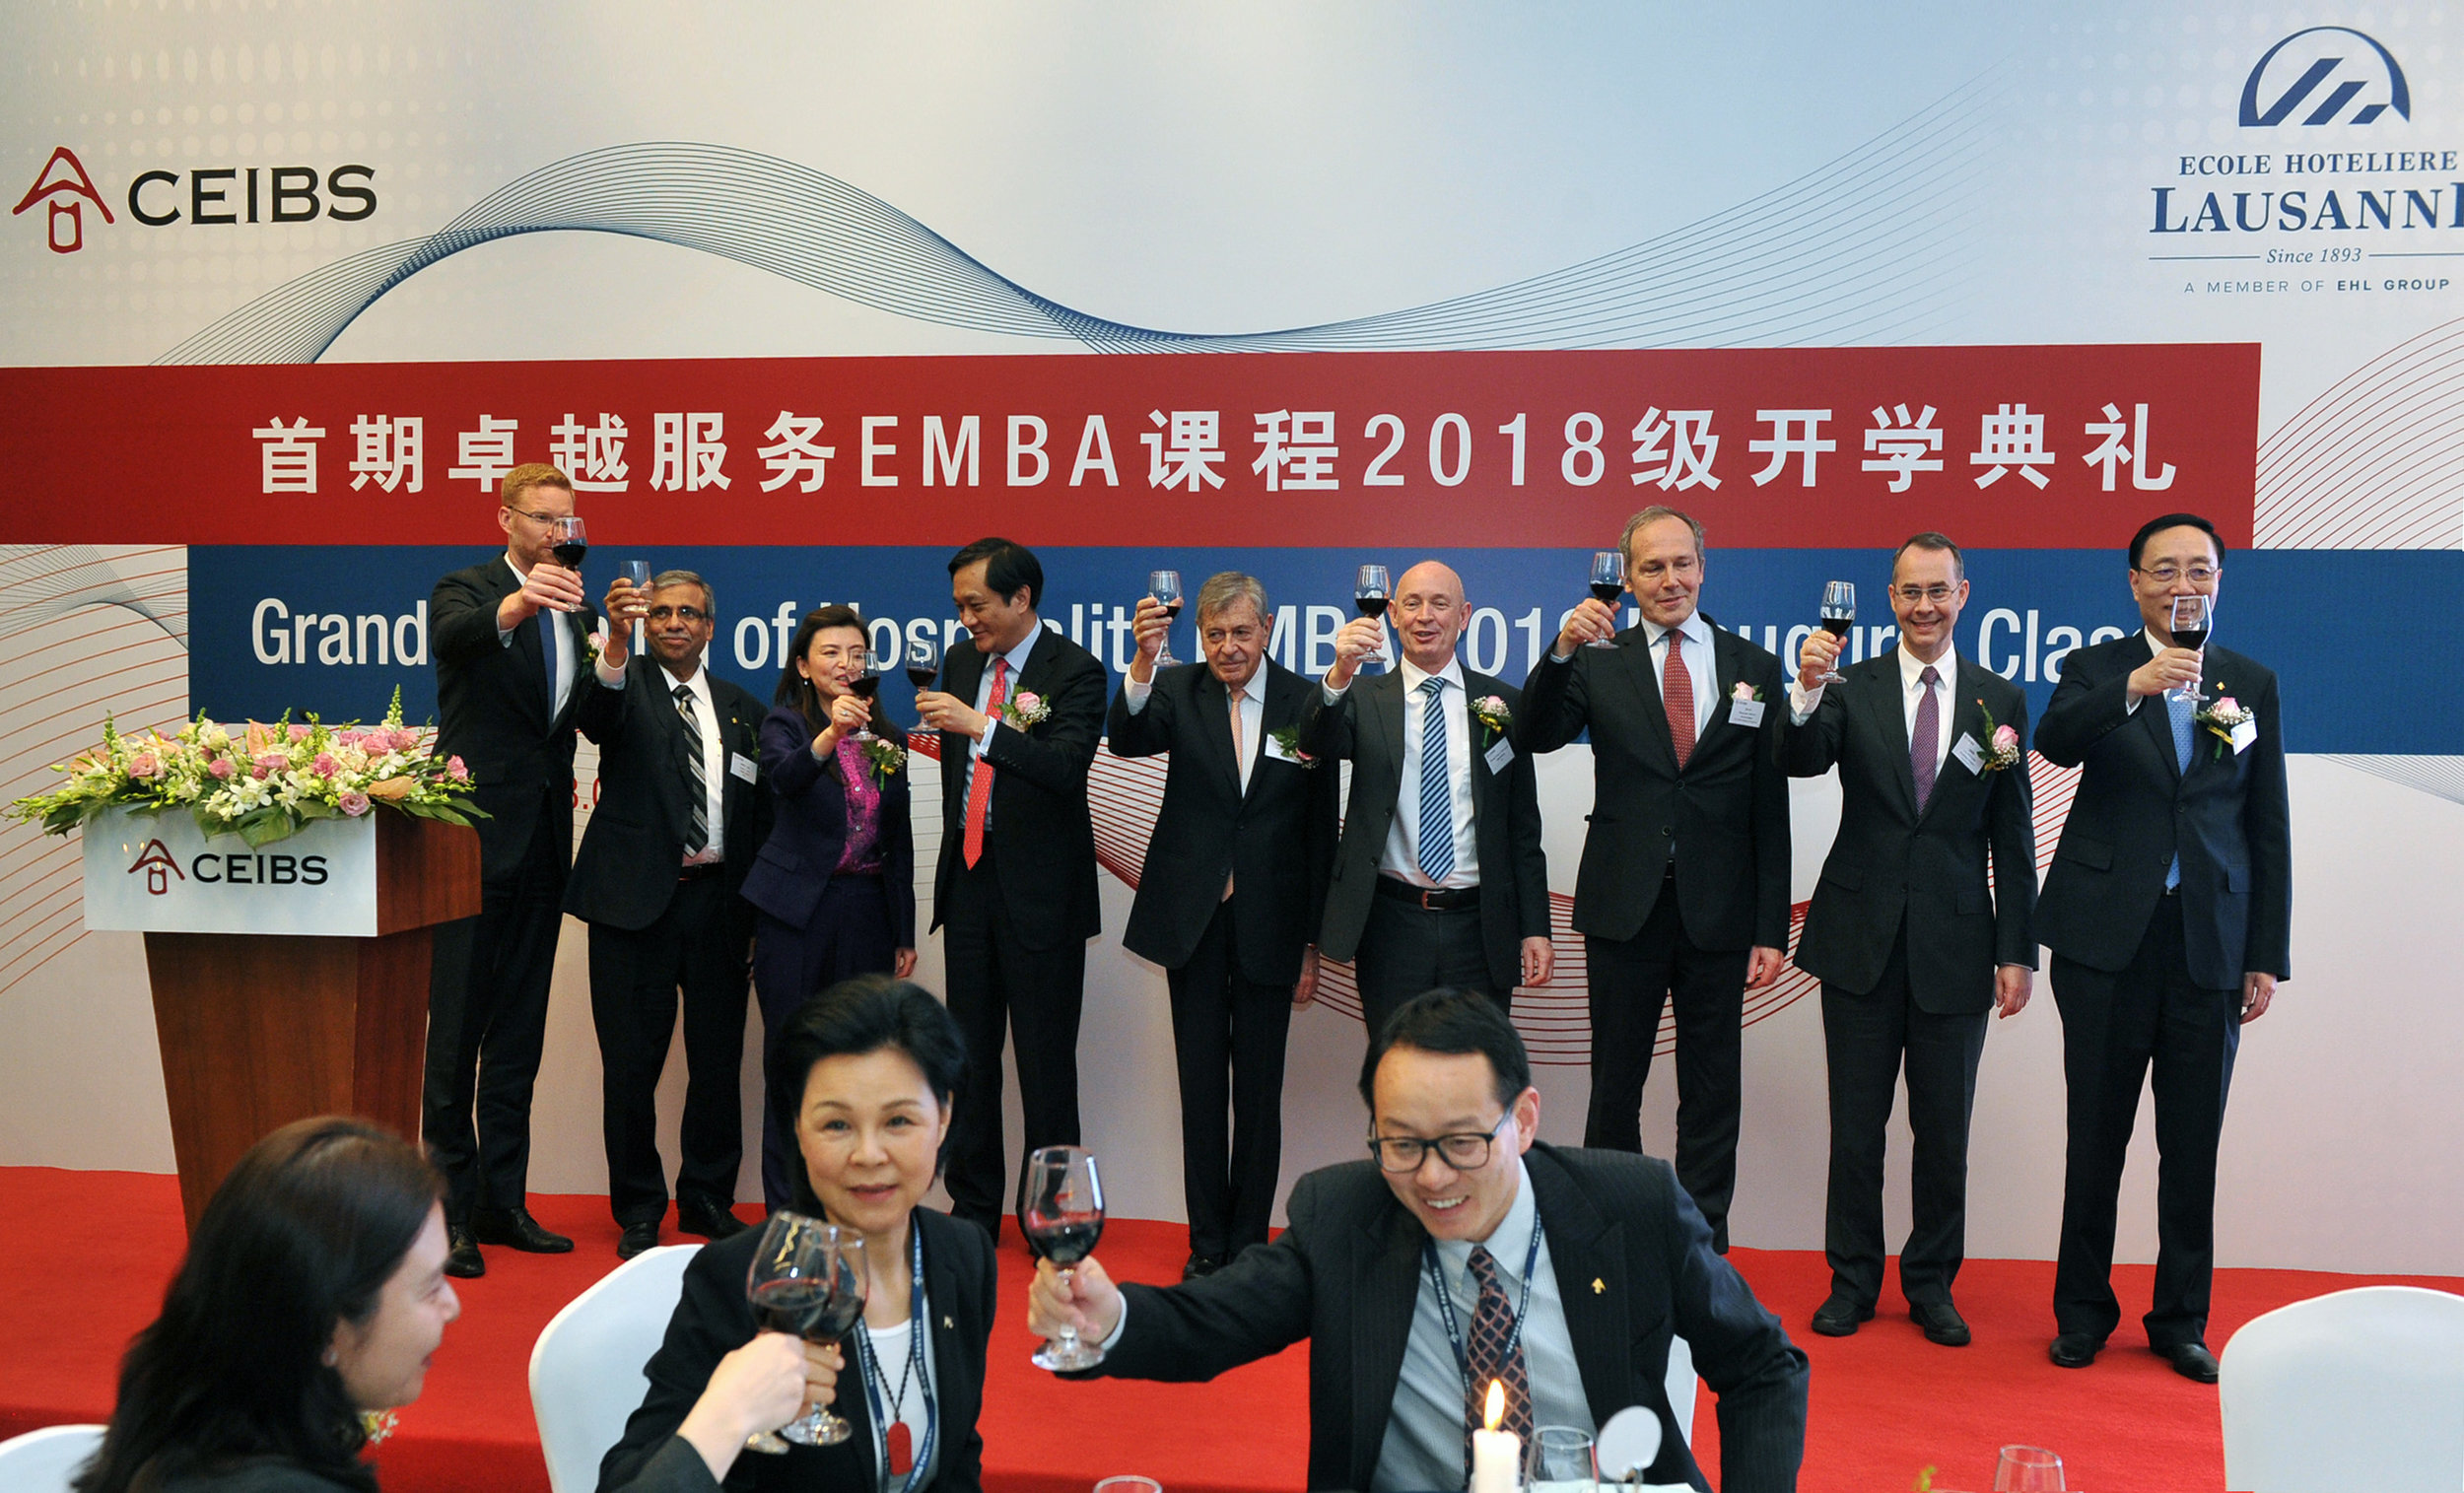 VIP guests-of-honor (incl. Dr. Felix Moesner, CEO of swissnex China, and Mr. Alexander Hoffet, Consul General of Switzerland in Shanghai) and EHL / CEIBS leadership representatives drink a toast to the programme's success.CEIBS© CEIBS, 2018.